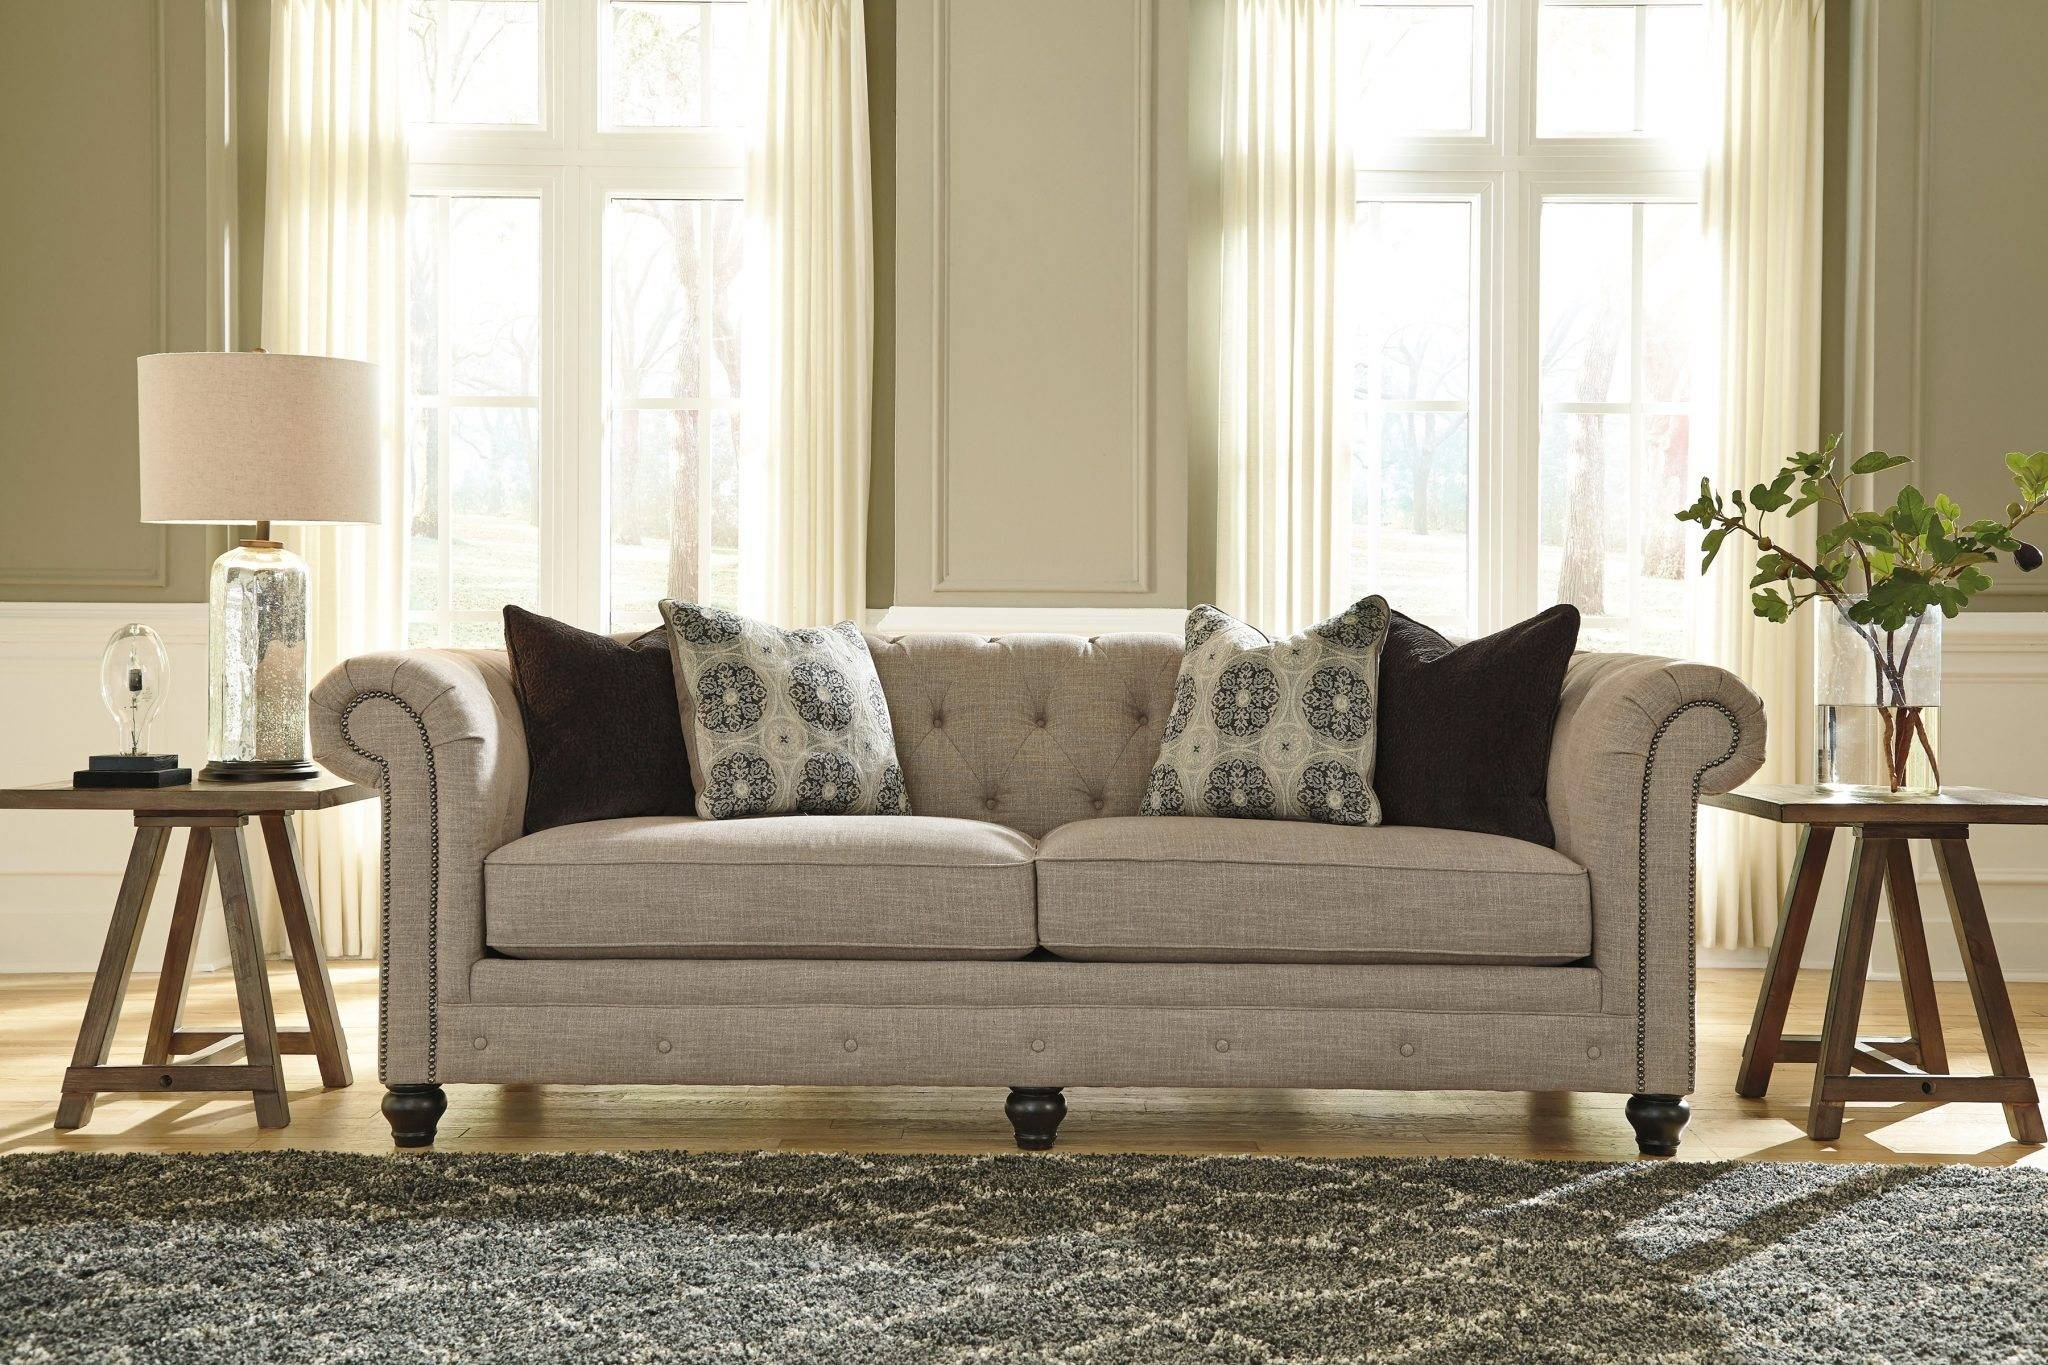 Best Furniture Mentor Oh: Furniture Store - Ashley Furniture inside Ashley Tufted Sofa (Image 10 of 30)